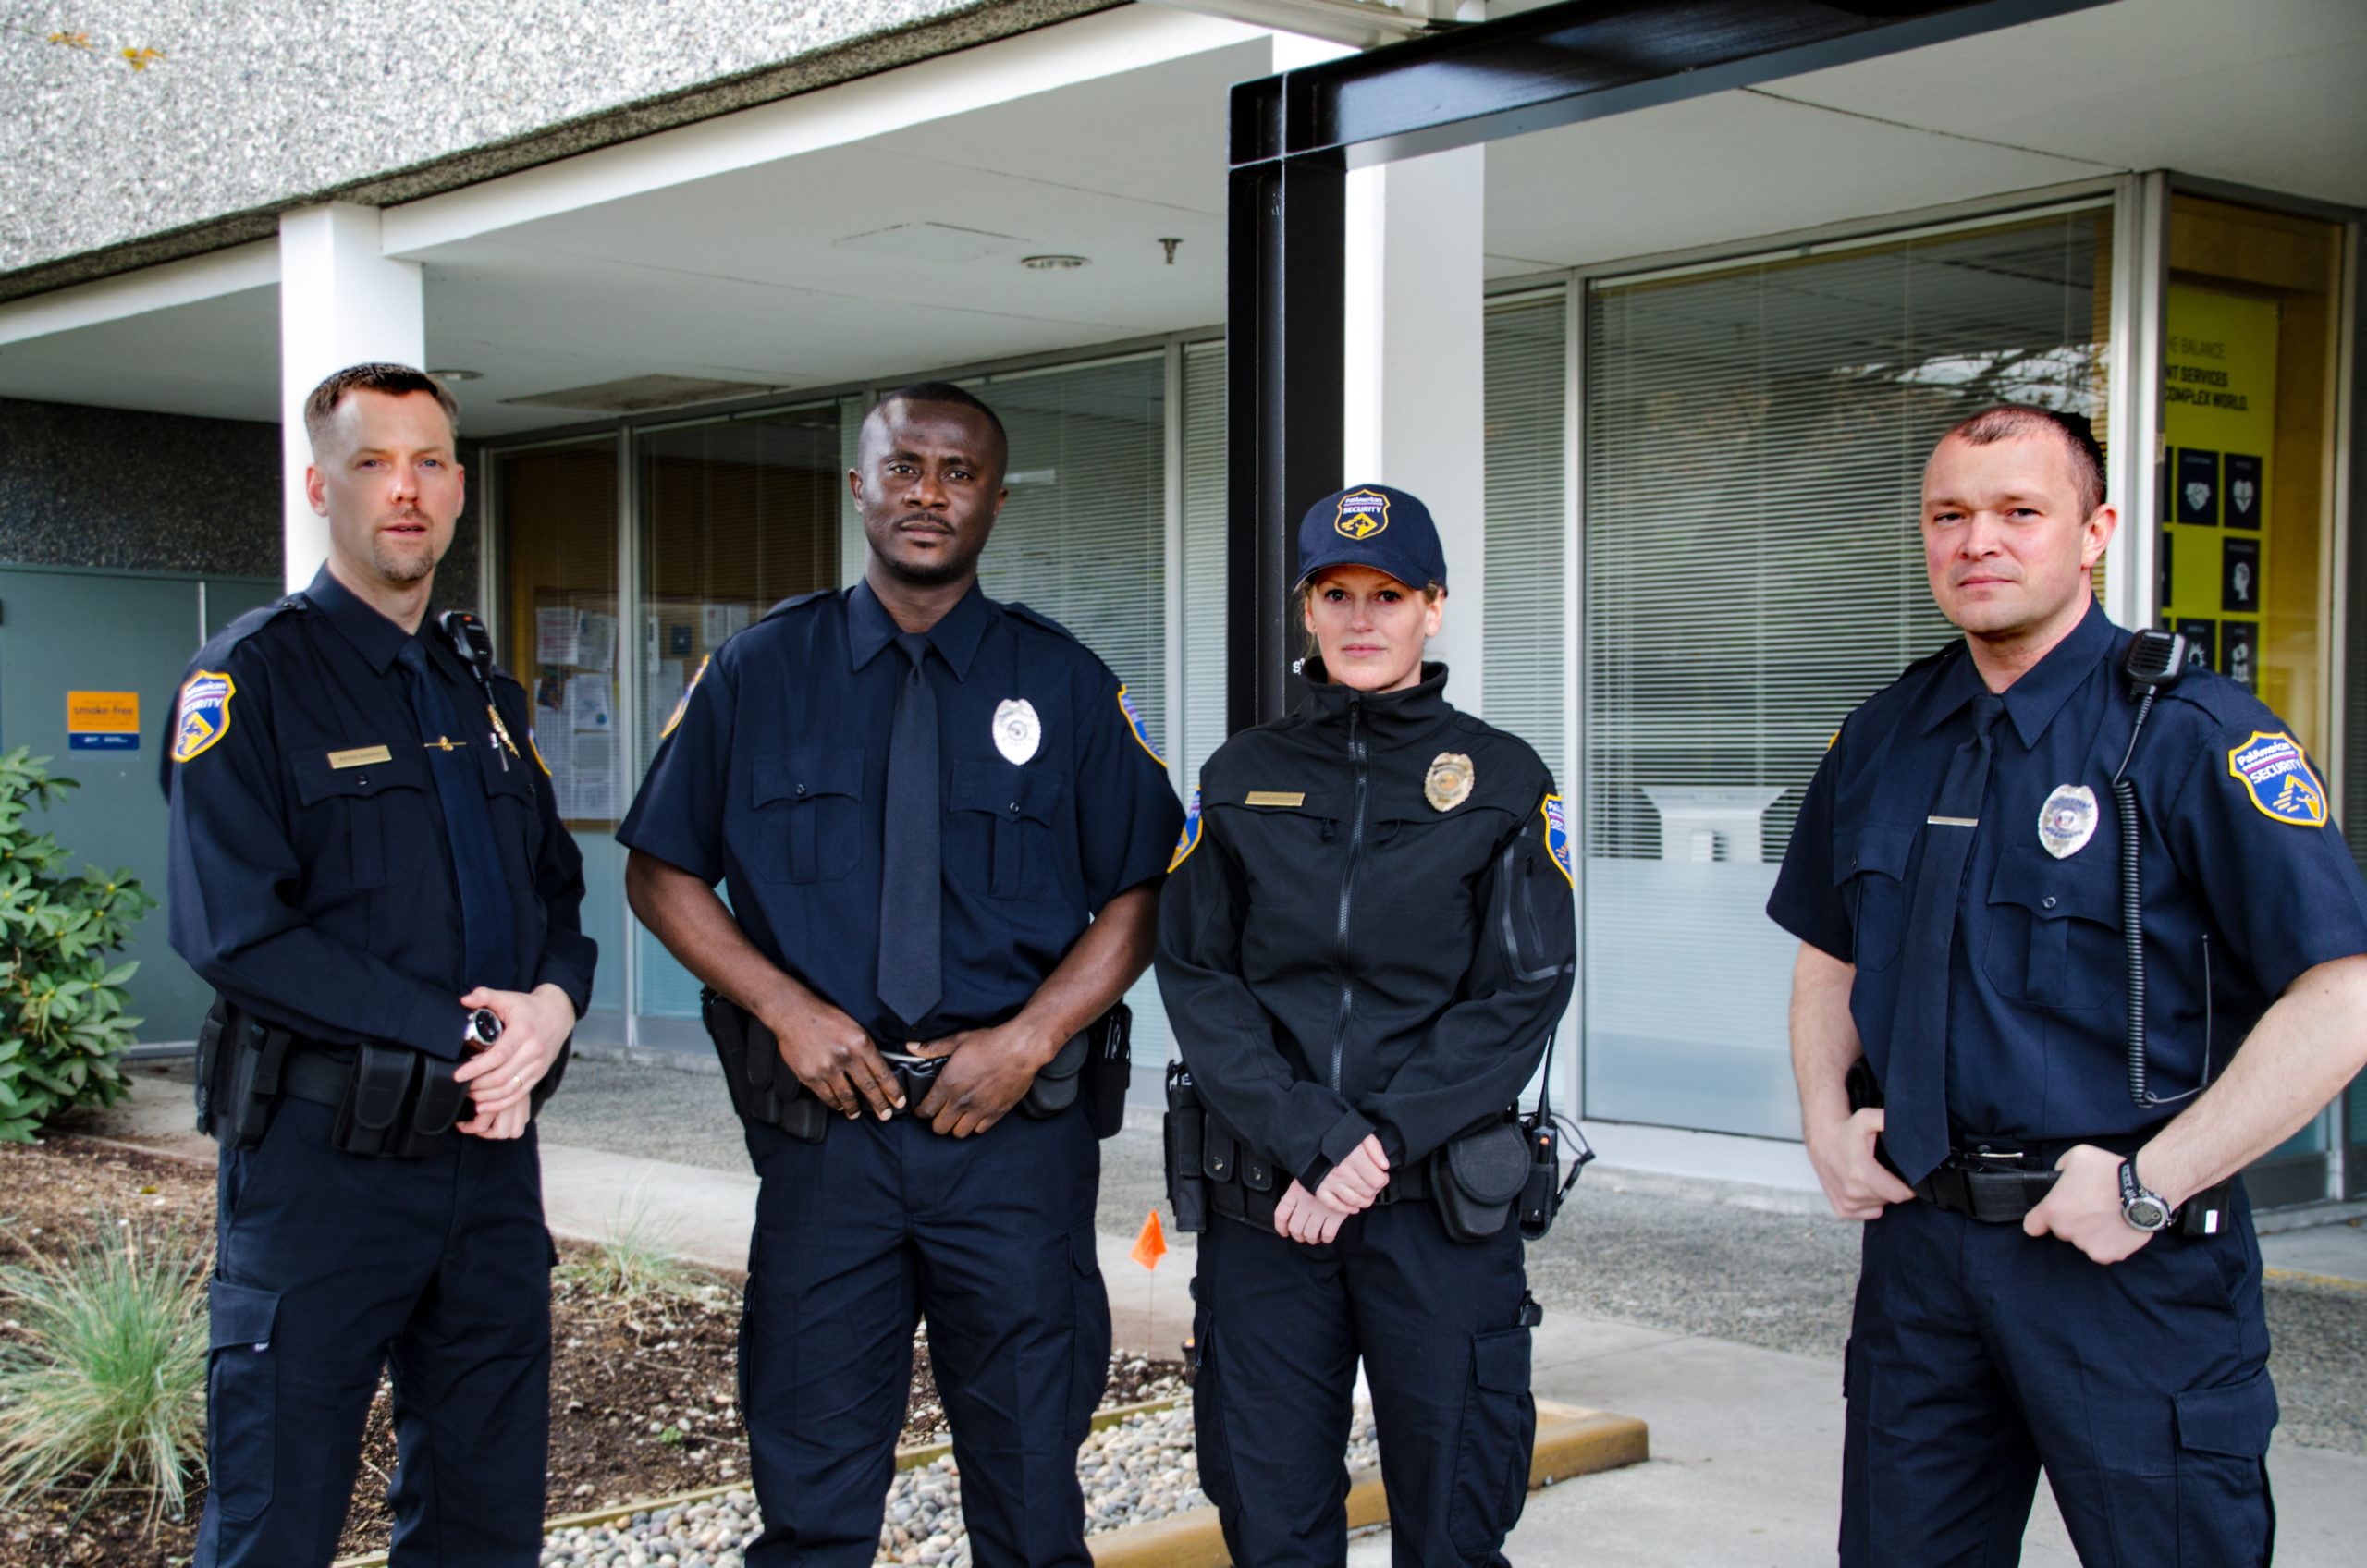 https://palamerican.com/wp-content/uploads/2021/06/4-Officers-Serious-scaled-2.jpg